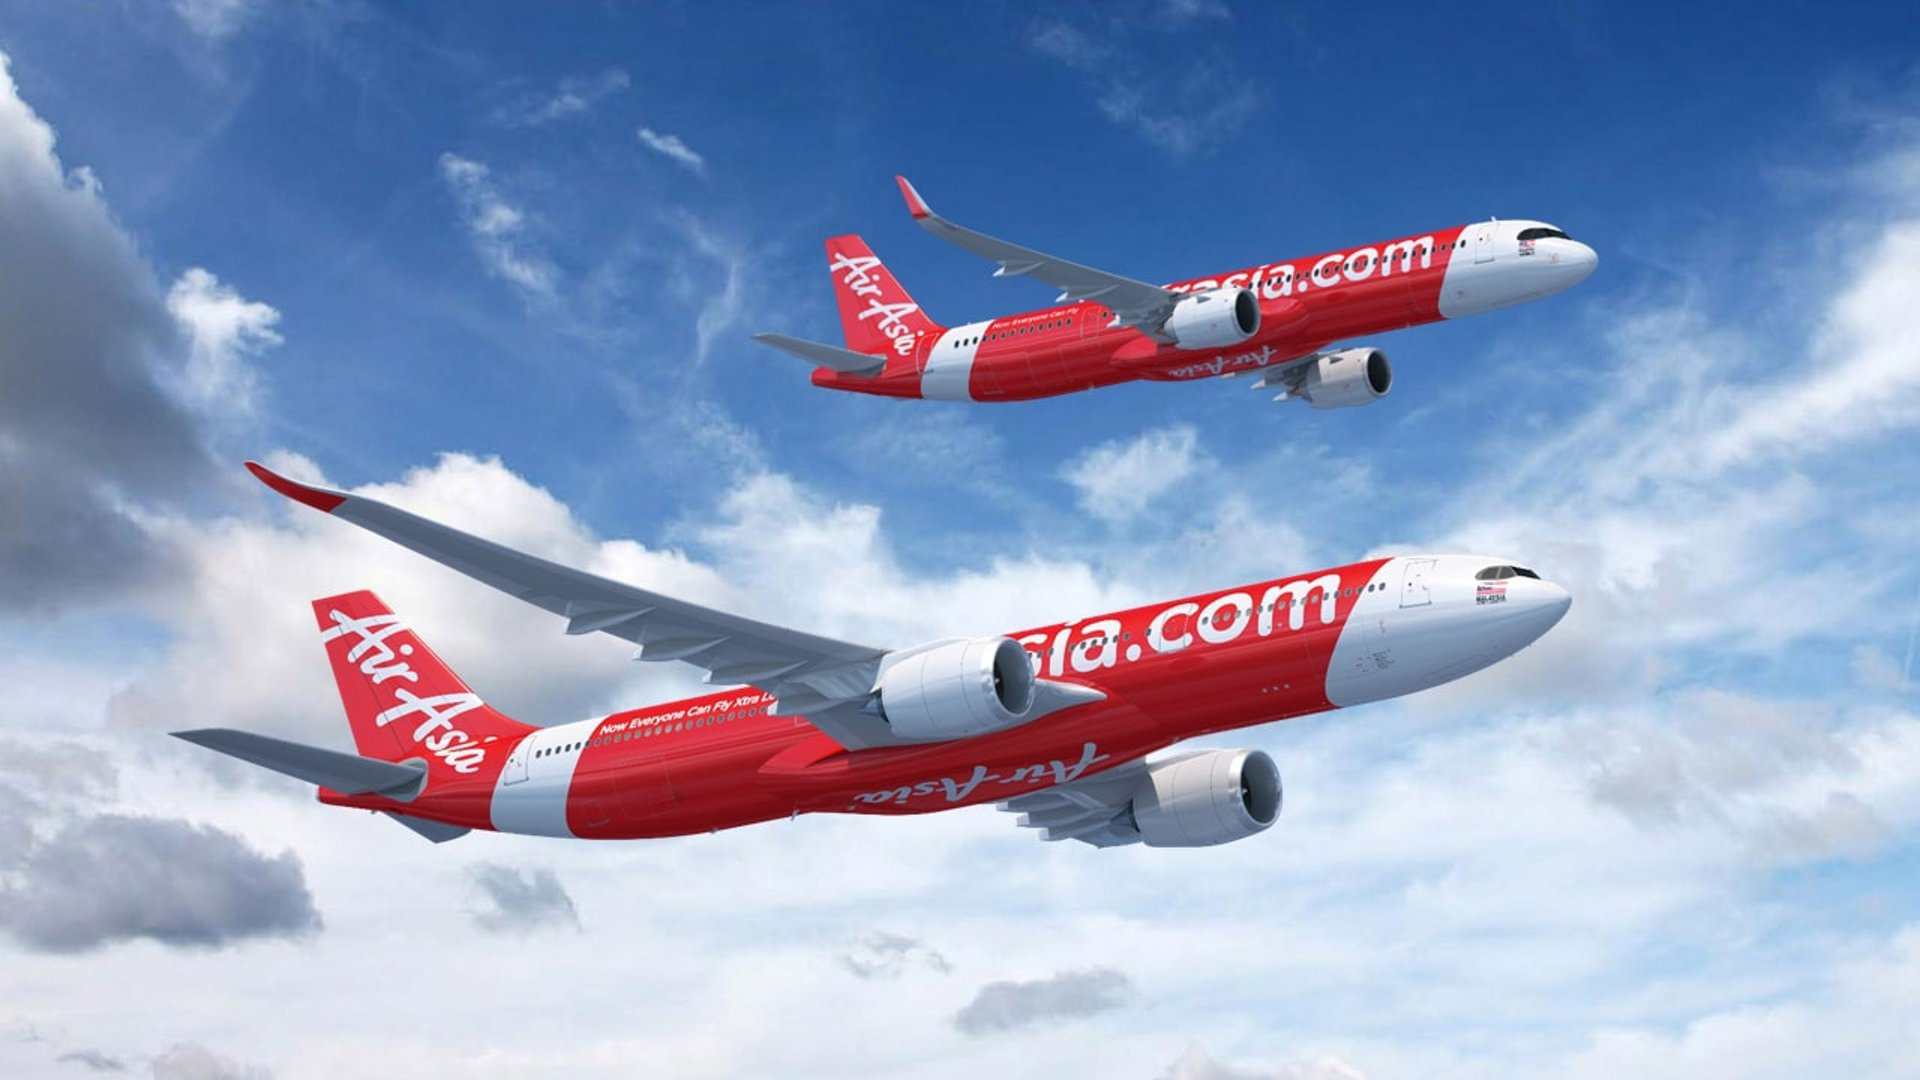 AirAsia X, the long-haul unit of the AirAsia Group, finalised a firm order for an additional 12 A330-900 and 30 A321XLR aircraft in August 2019